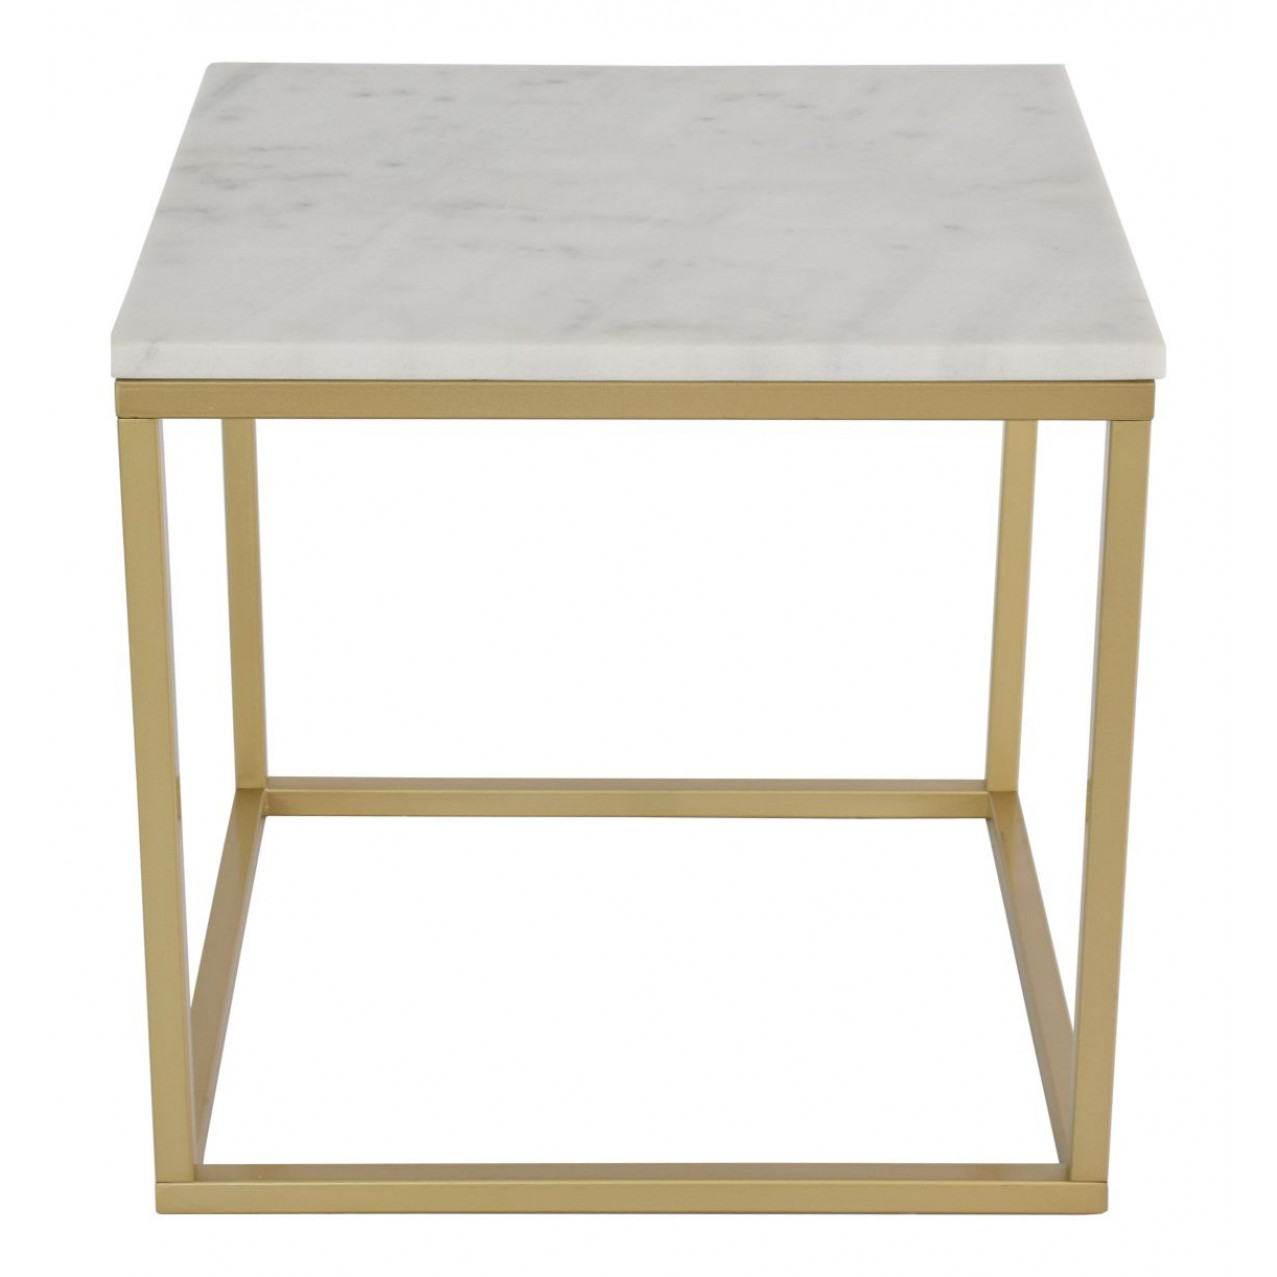 Marble Coffee Table Square 50 Accent | Gold